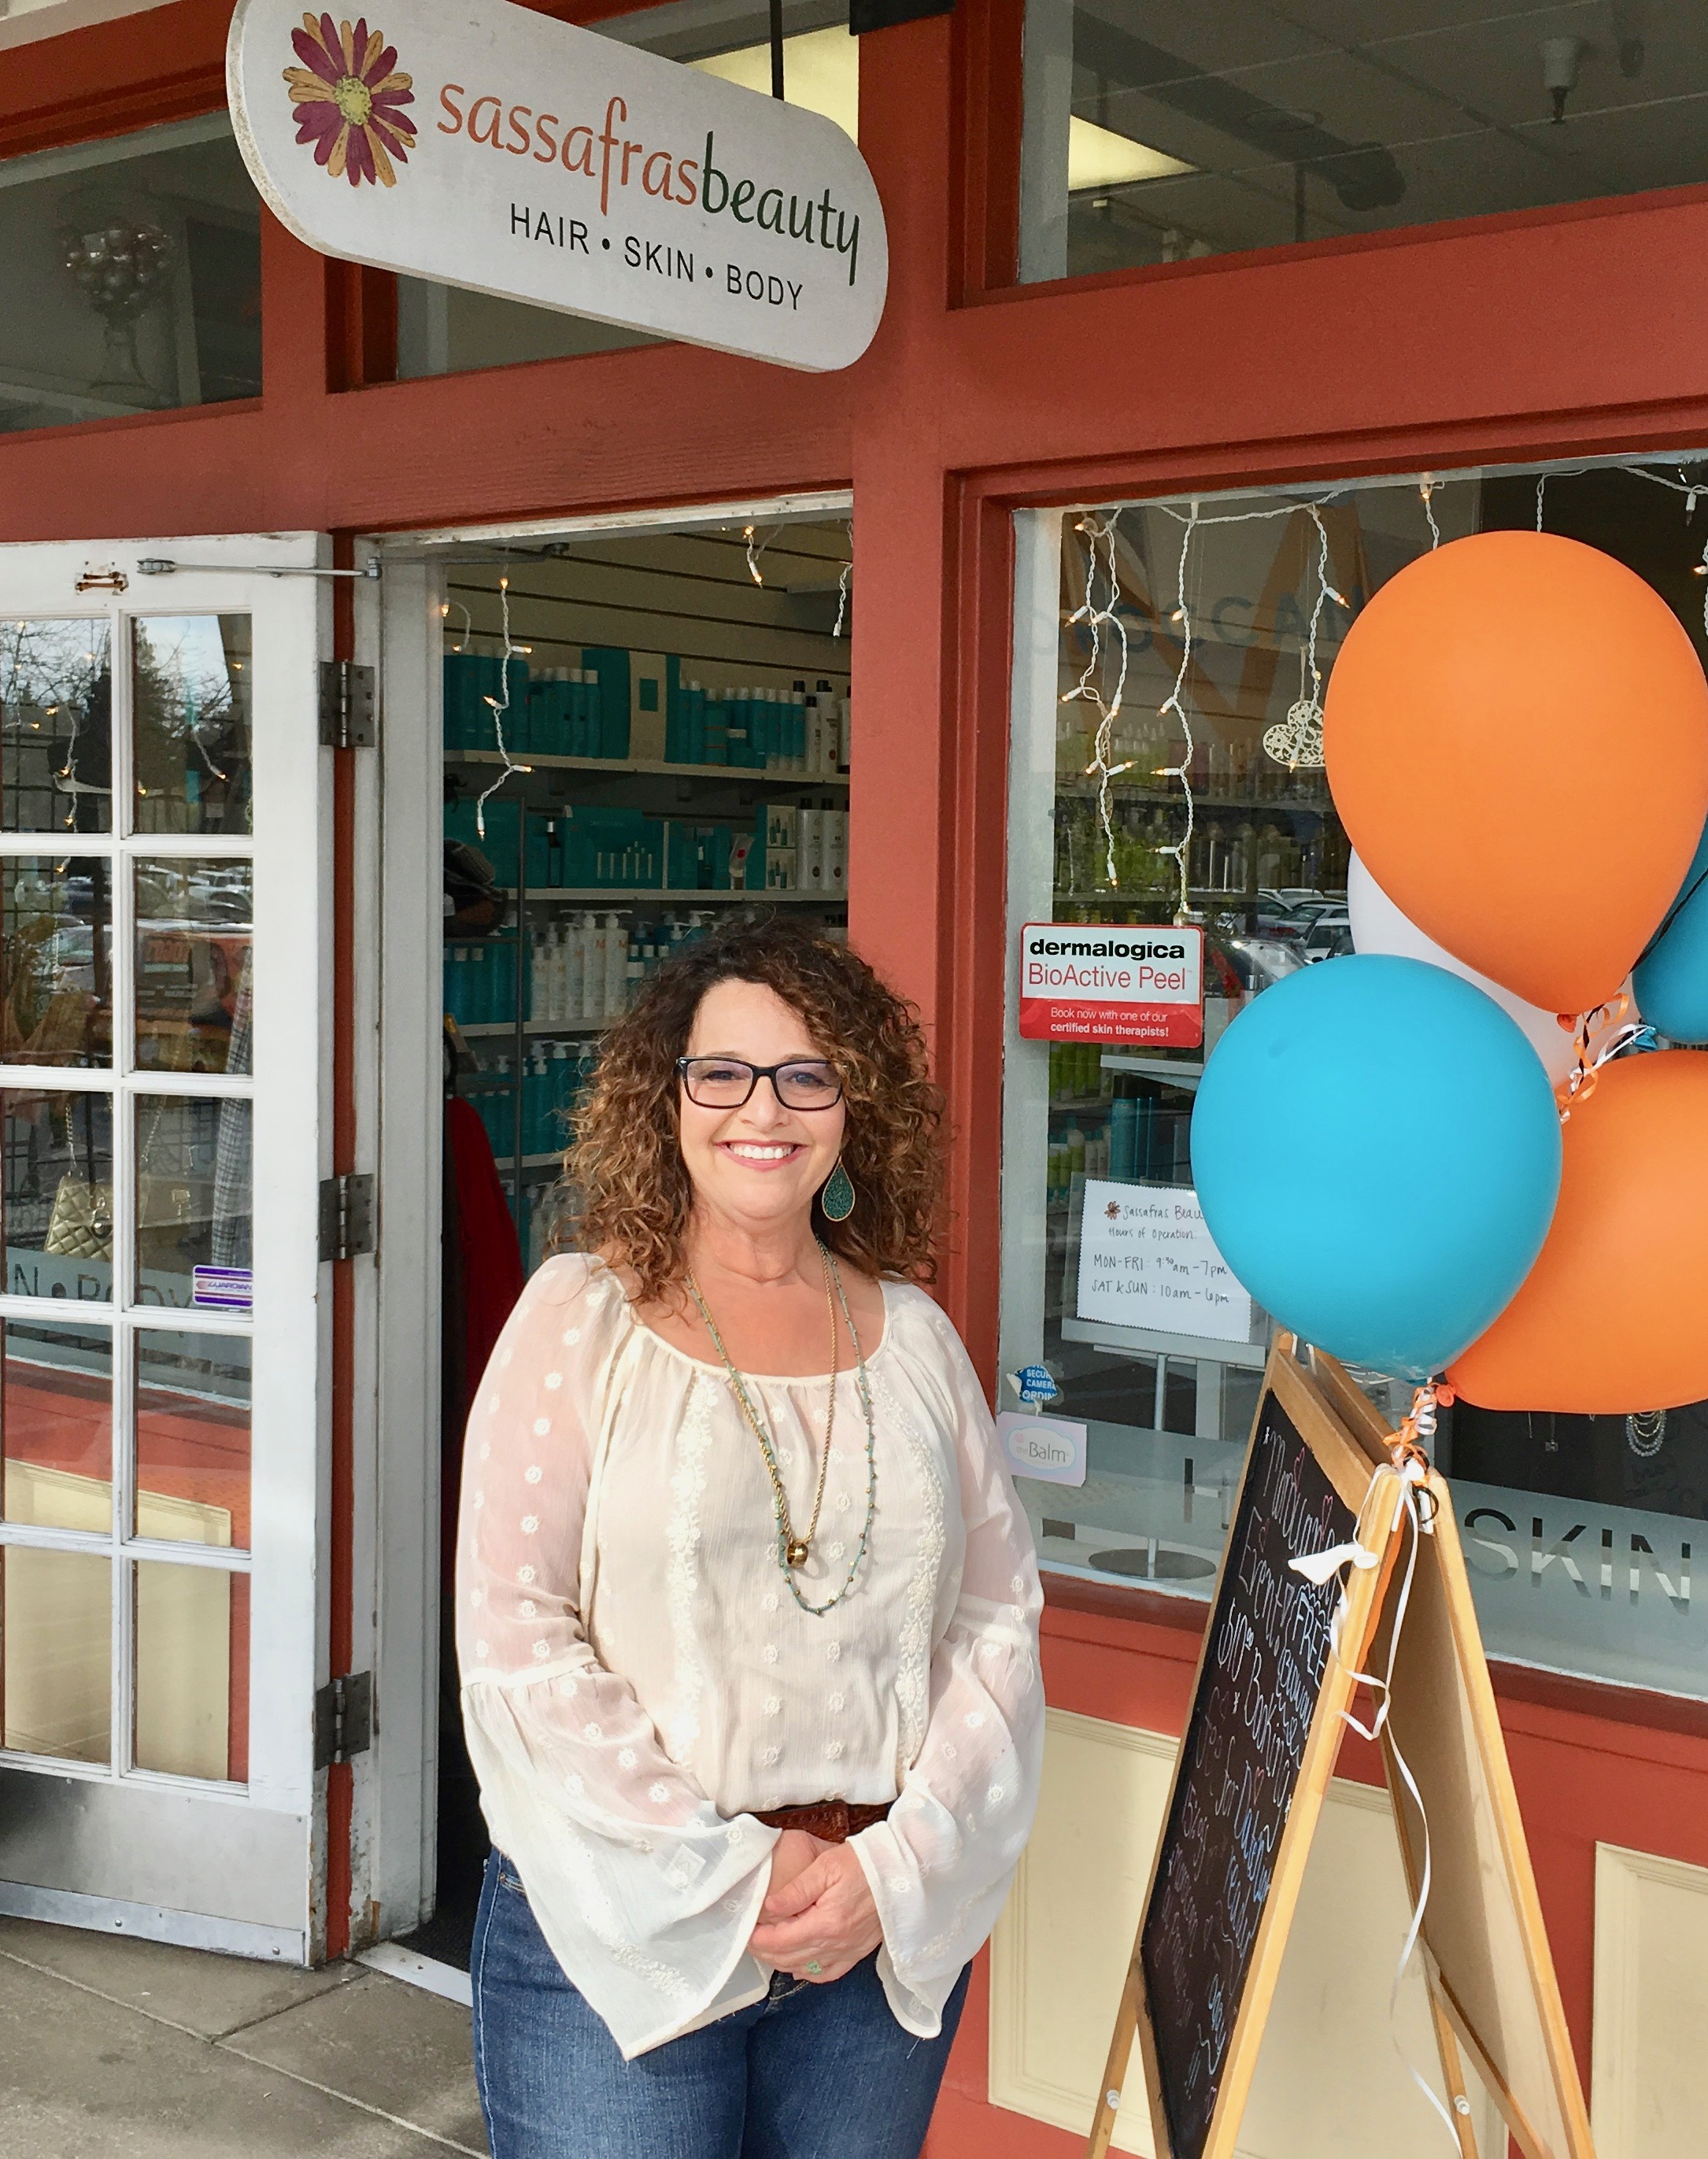 Danielle Crane, owner of Sassafras salon in Davis, California